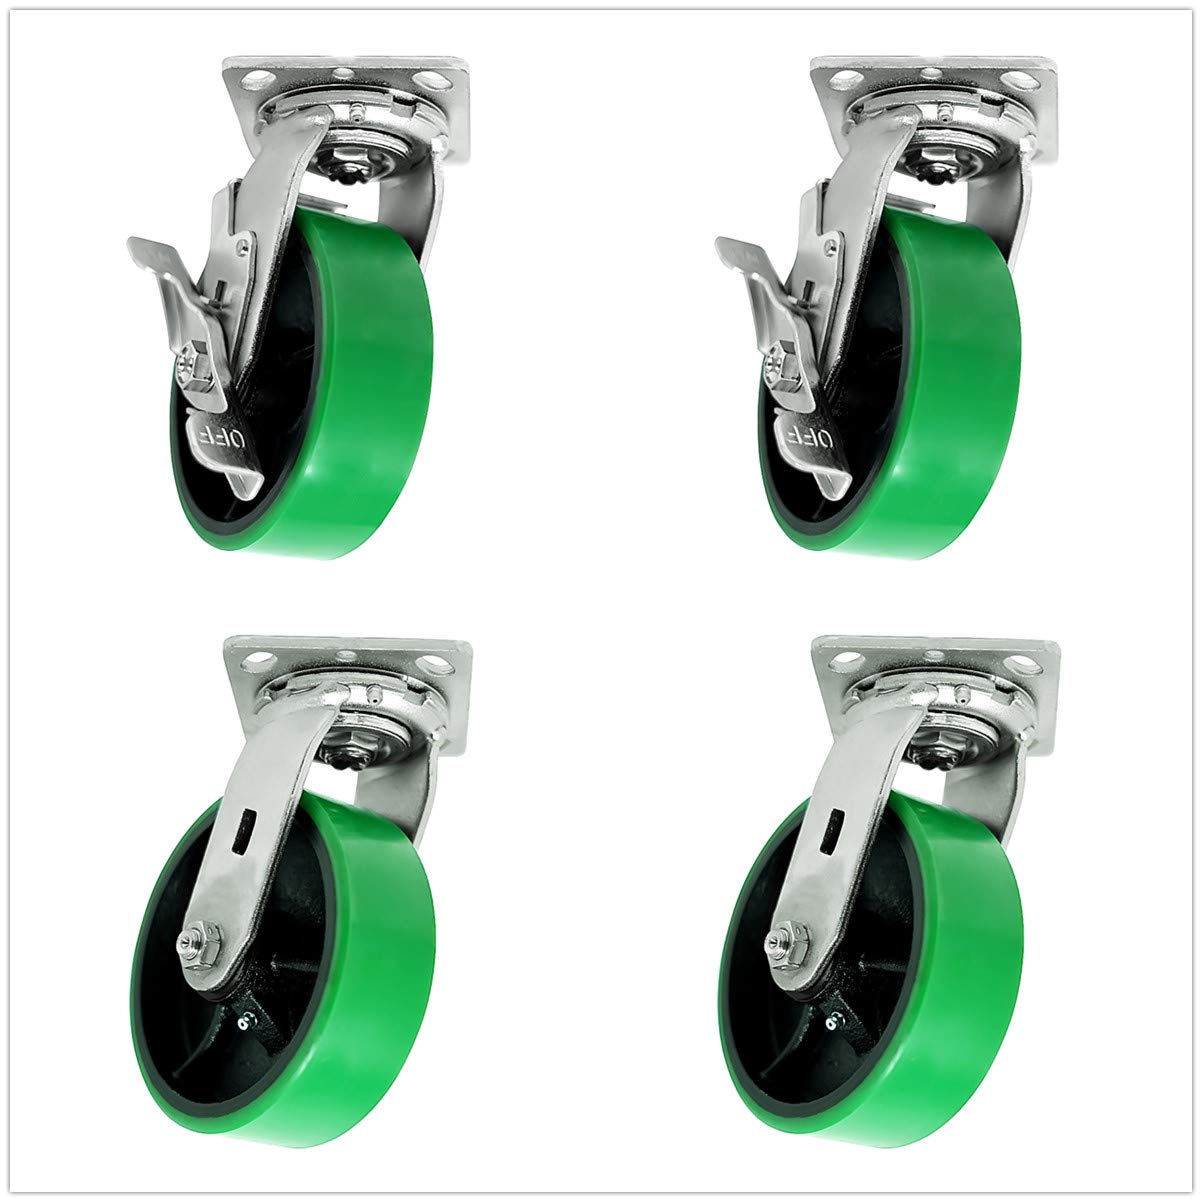 SY America 8'' 4 Pack Plate Caster, Heavy Duty Polyurethane Mold on Steel Wheel w/Roller Bearing Top Plate Caster 5000 lbs Total Capacity (8 inches Pack of 4, Green, 4 Swivel 2 w/Brake)